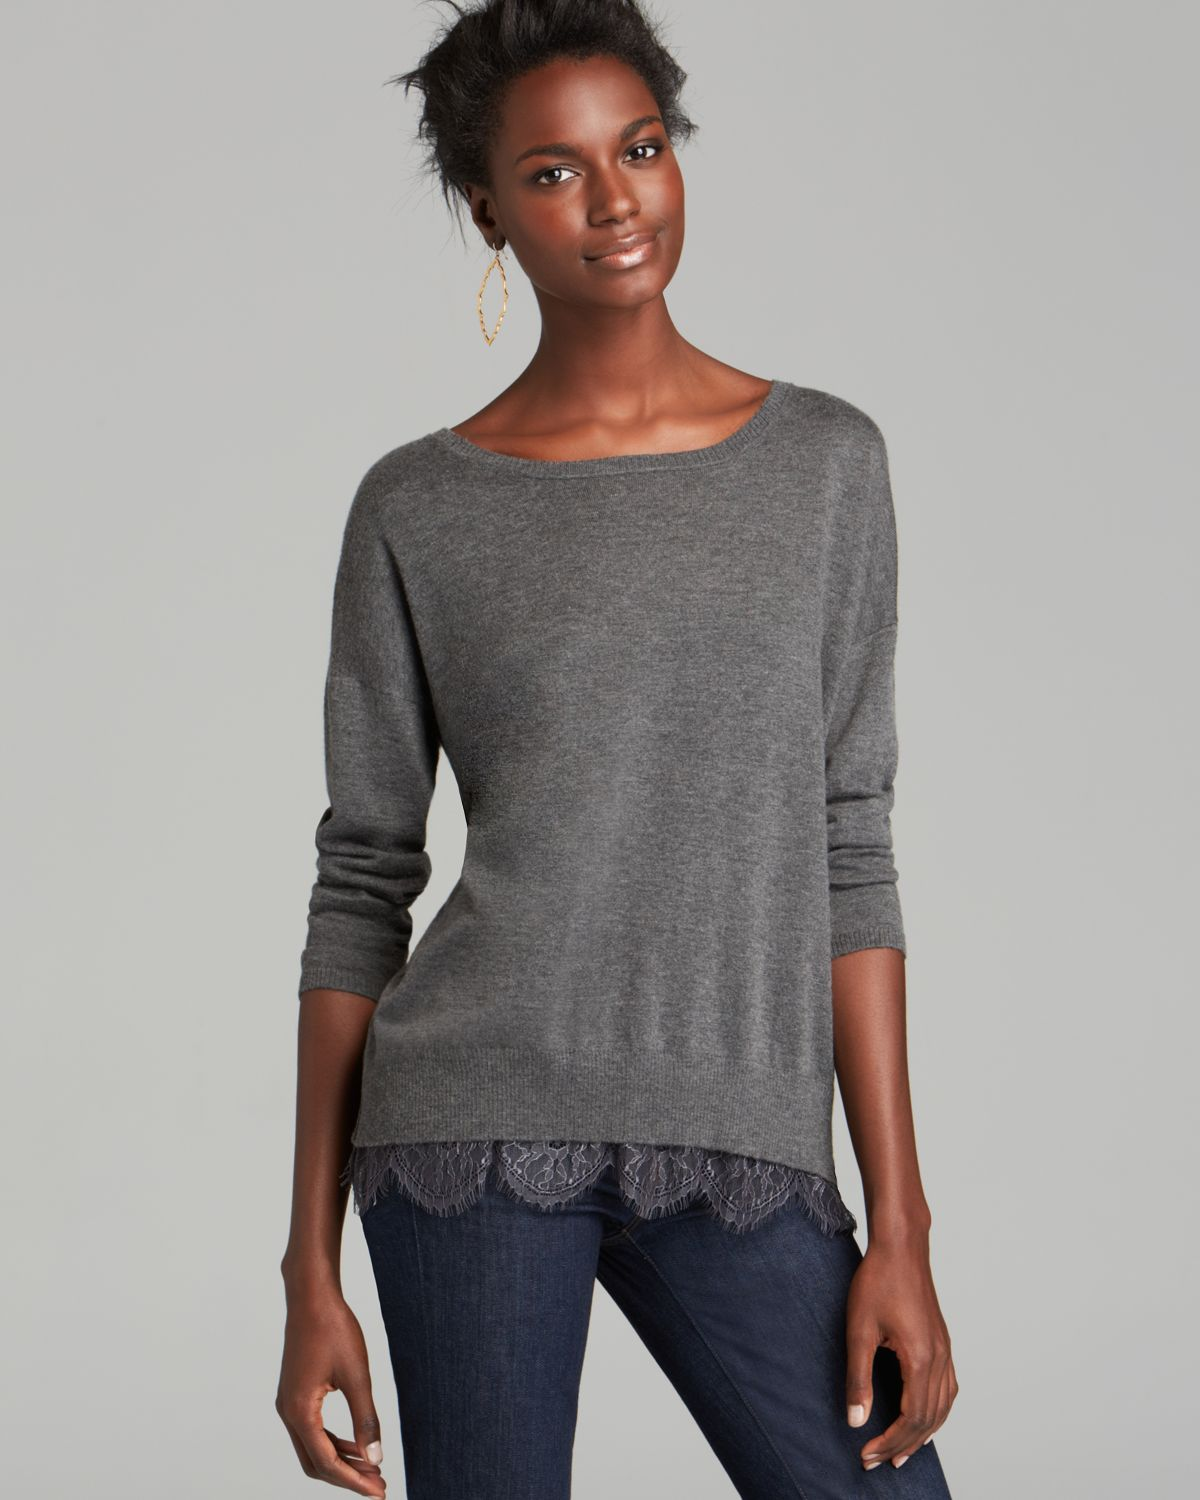 Joie Sweater Hilano Lace Trim in Gray | Lyst